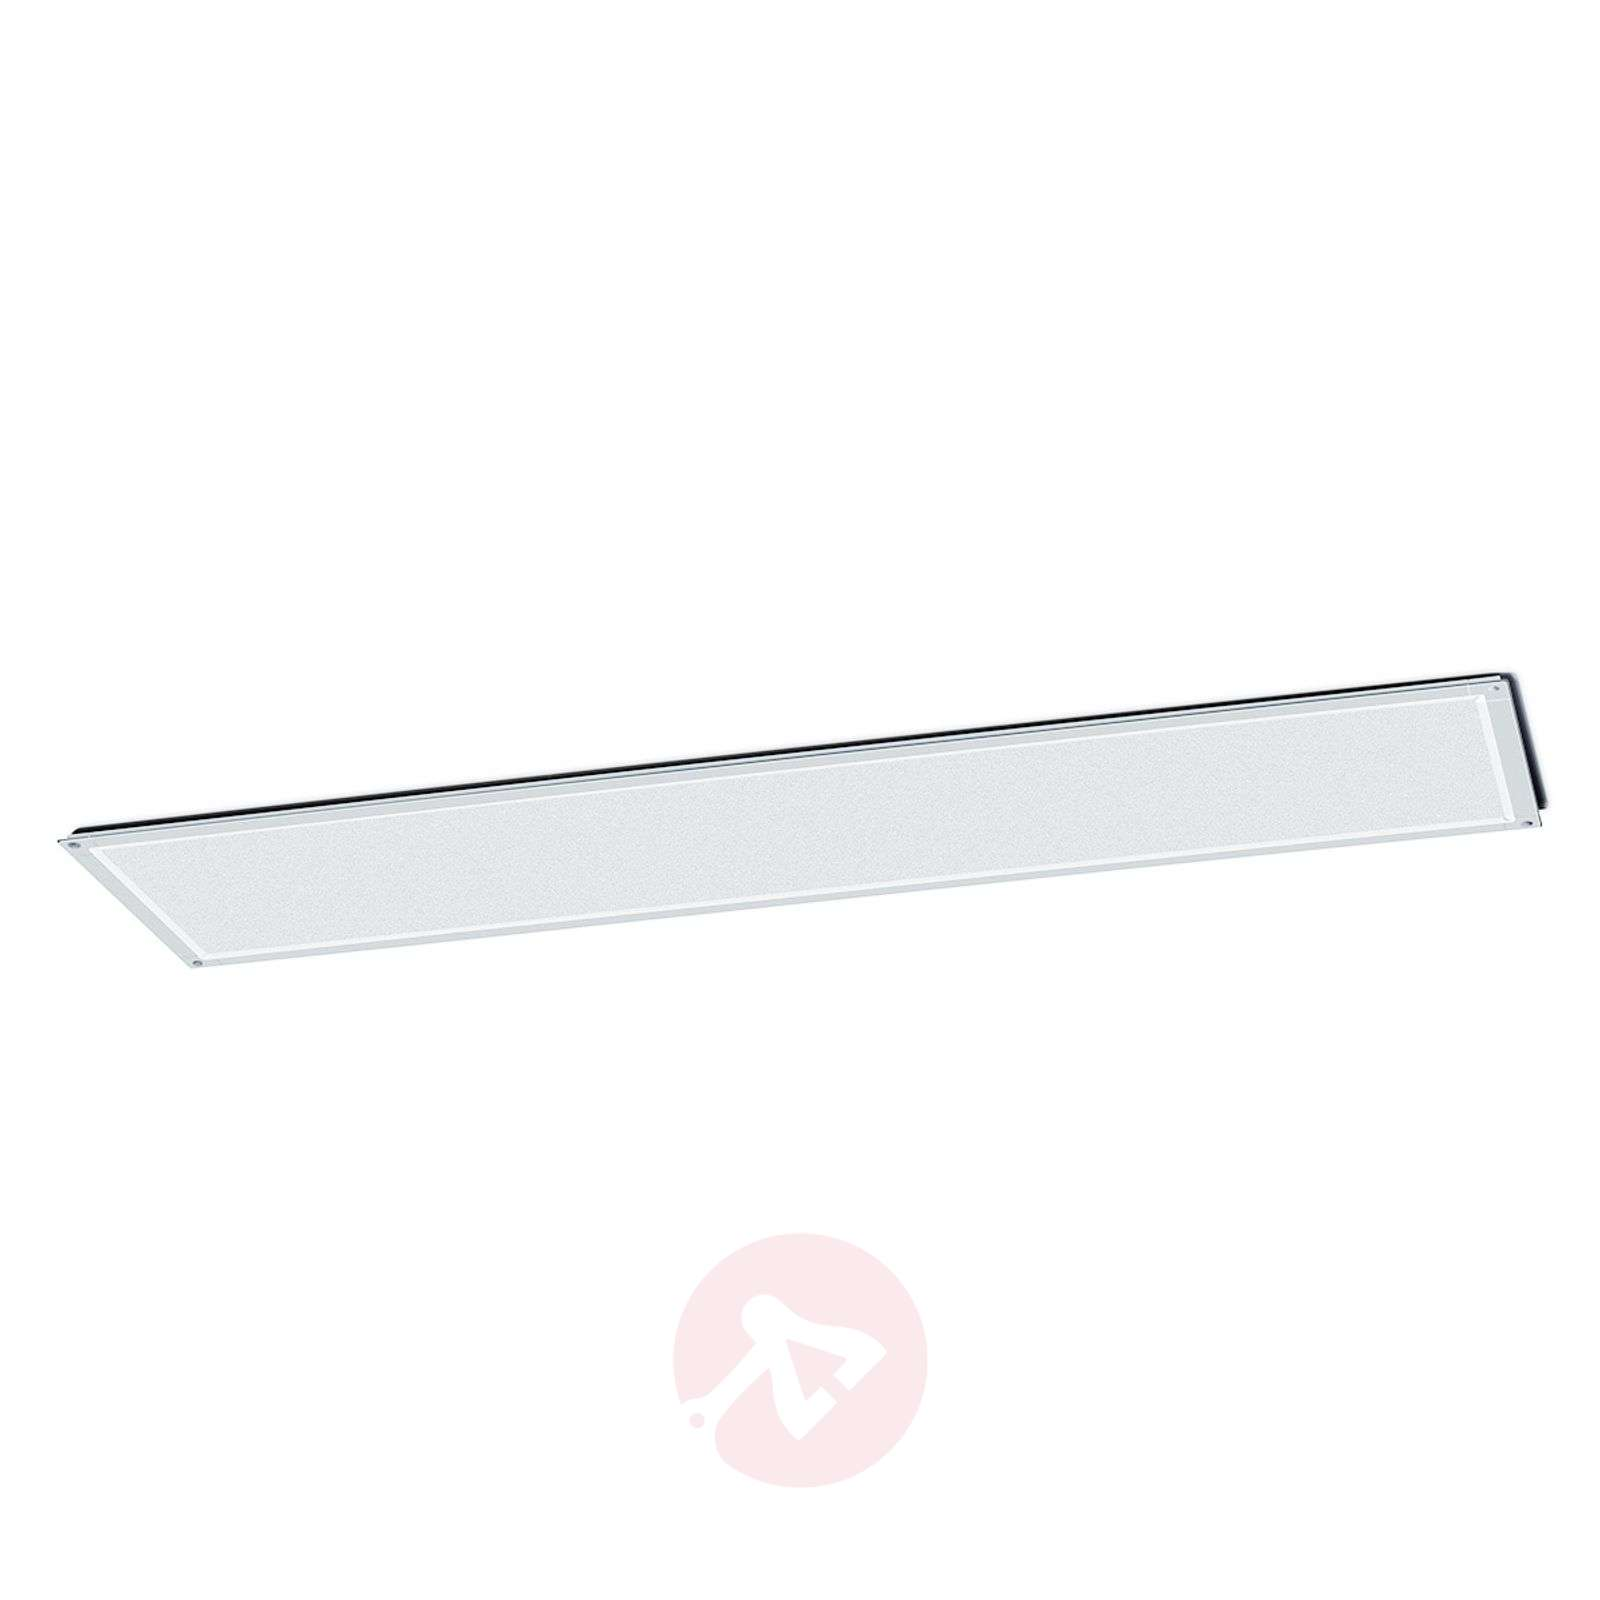 Panel para techo LED de rejilla EC 124730 48 W-6084007X-01